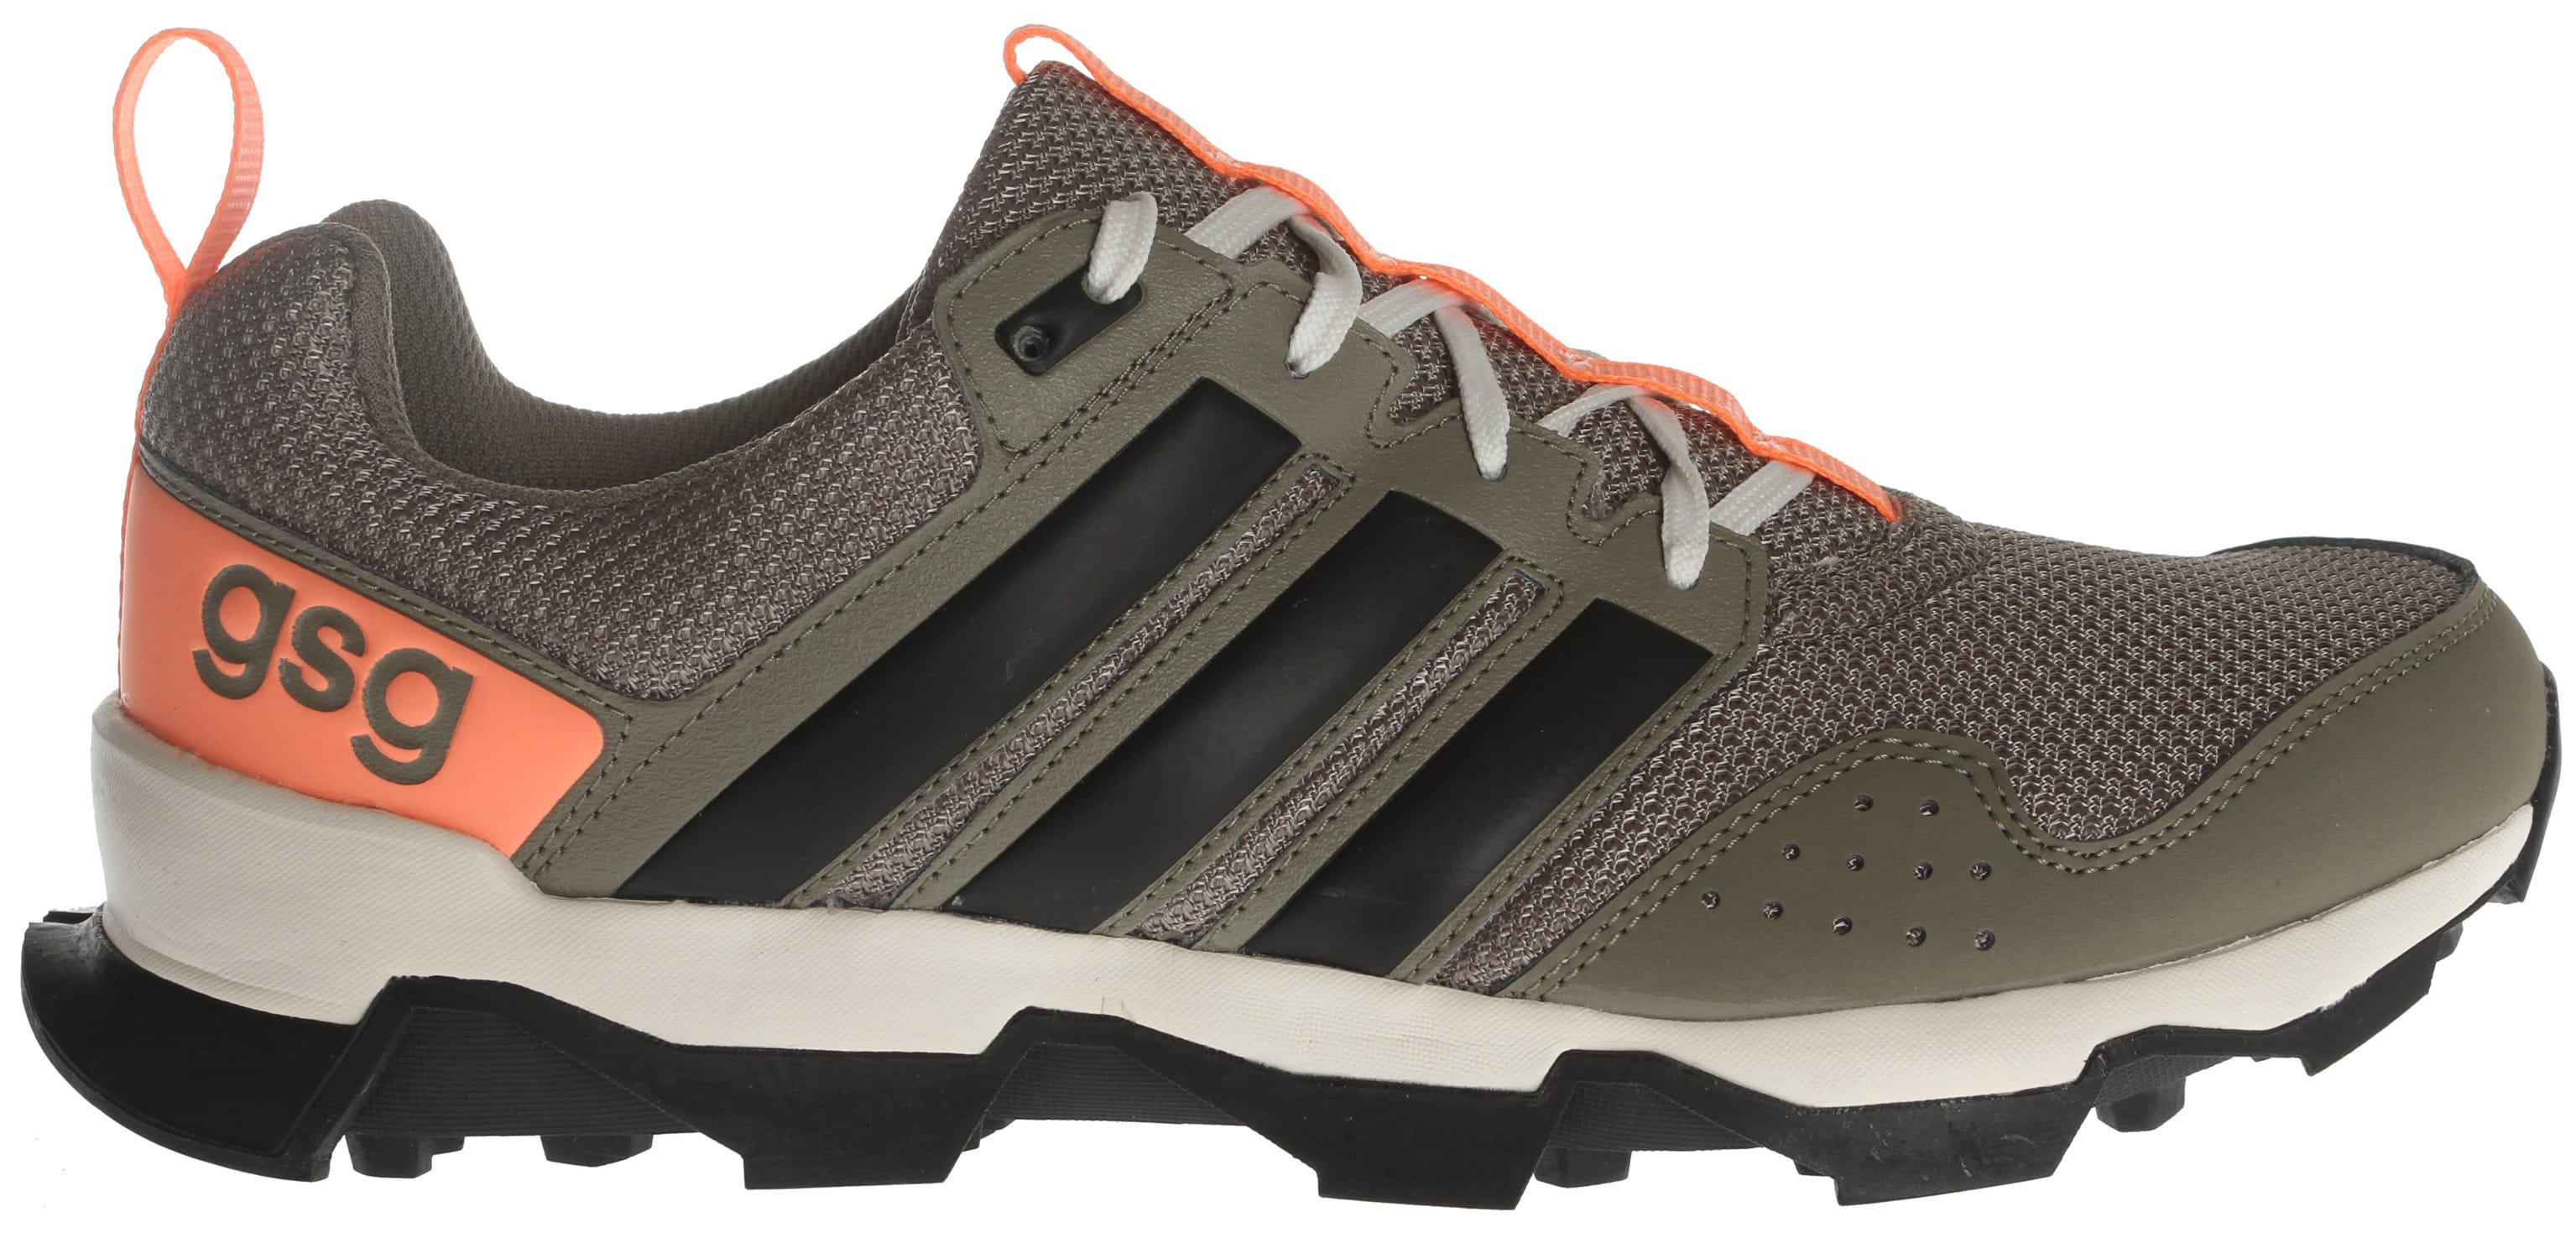 Buy cheap adidas gsg9  Up to OFF49% Discounts a2d934554